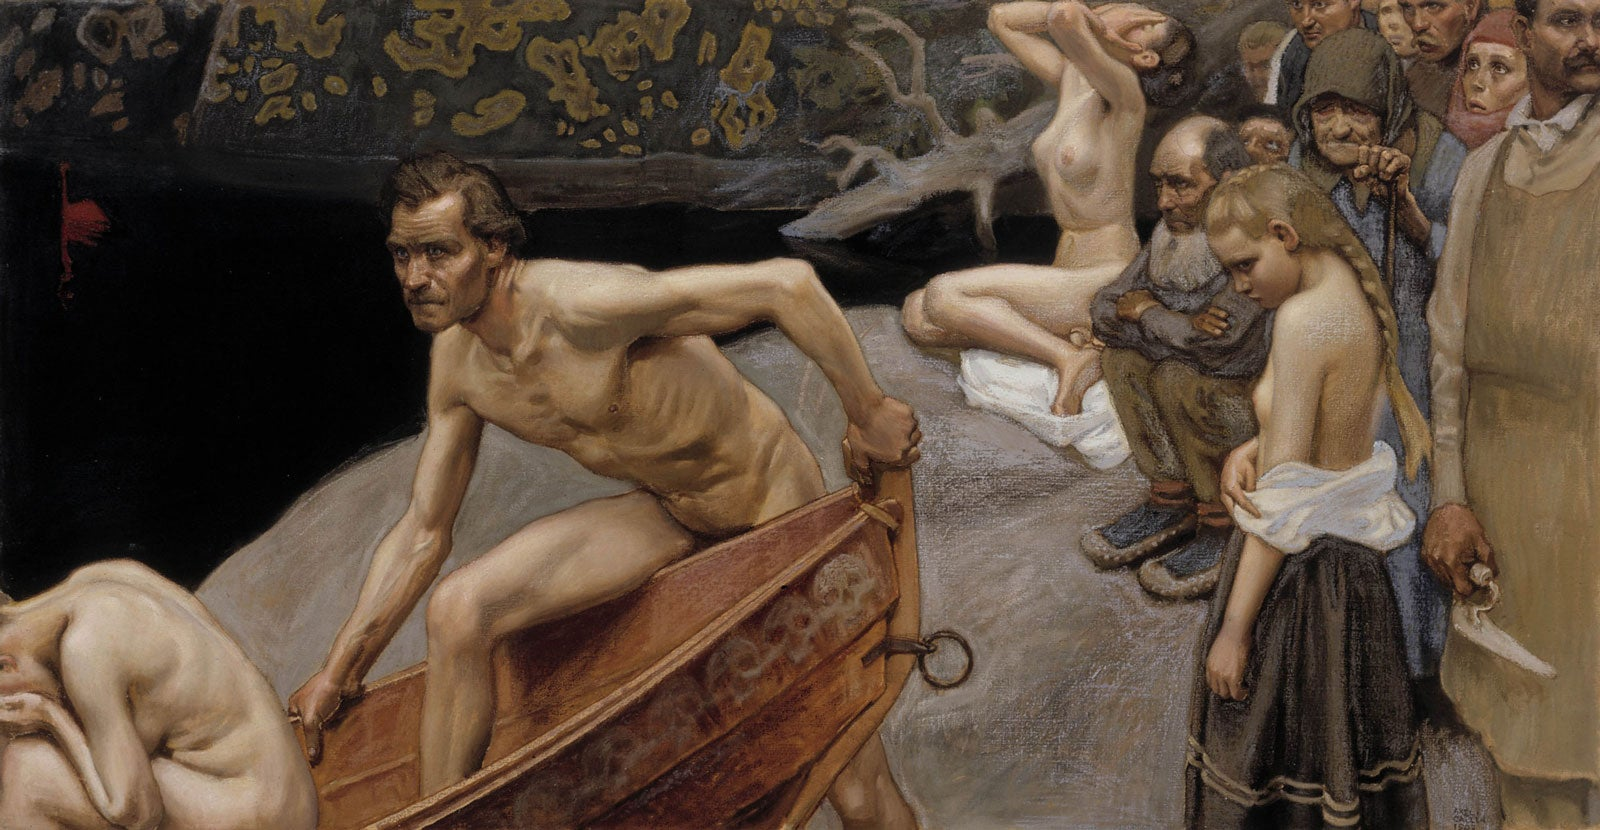 A painiting, showing a naked man climbing into a boat which rests on a dark river. bending him on the banks is a crowd of desolate people waiting